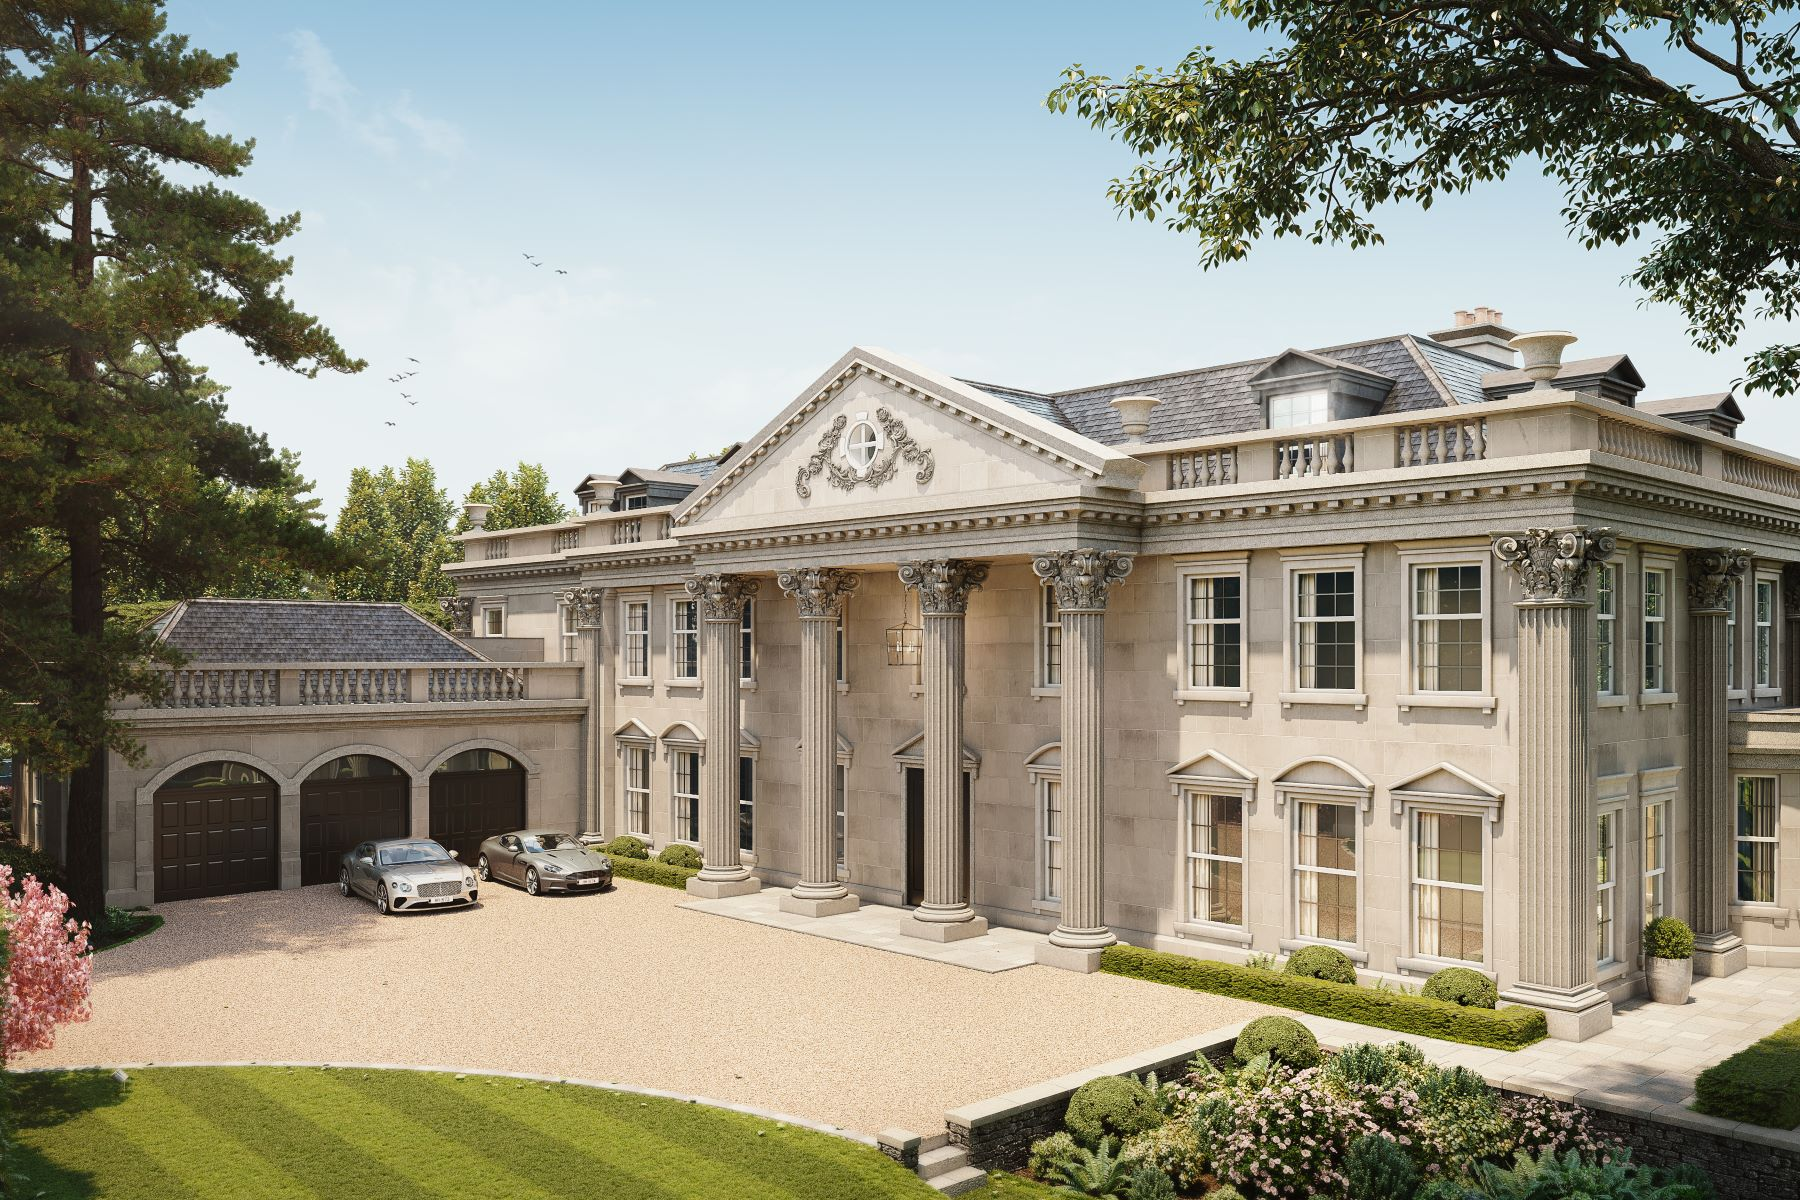 Single Family Homes pour l Vente à Hampton Hall Queens Drive Oxshott, Angleterre KT22 0PB Royaume-Uni